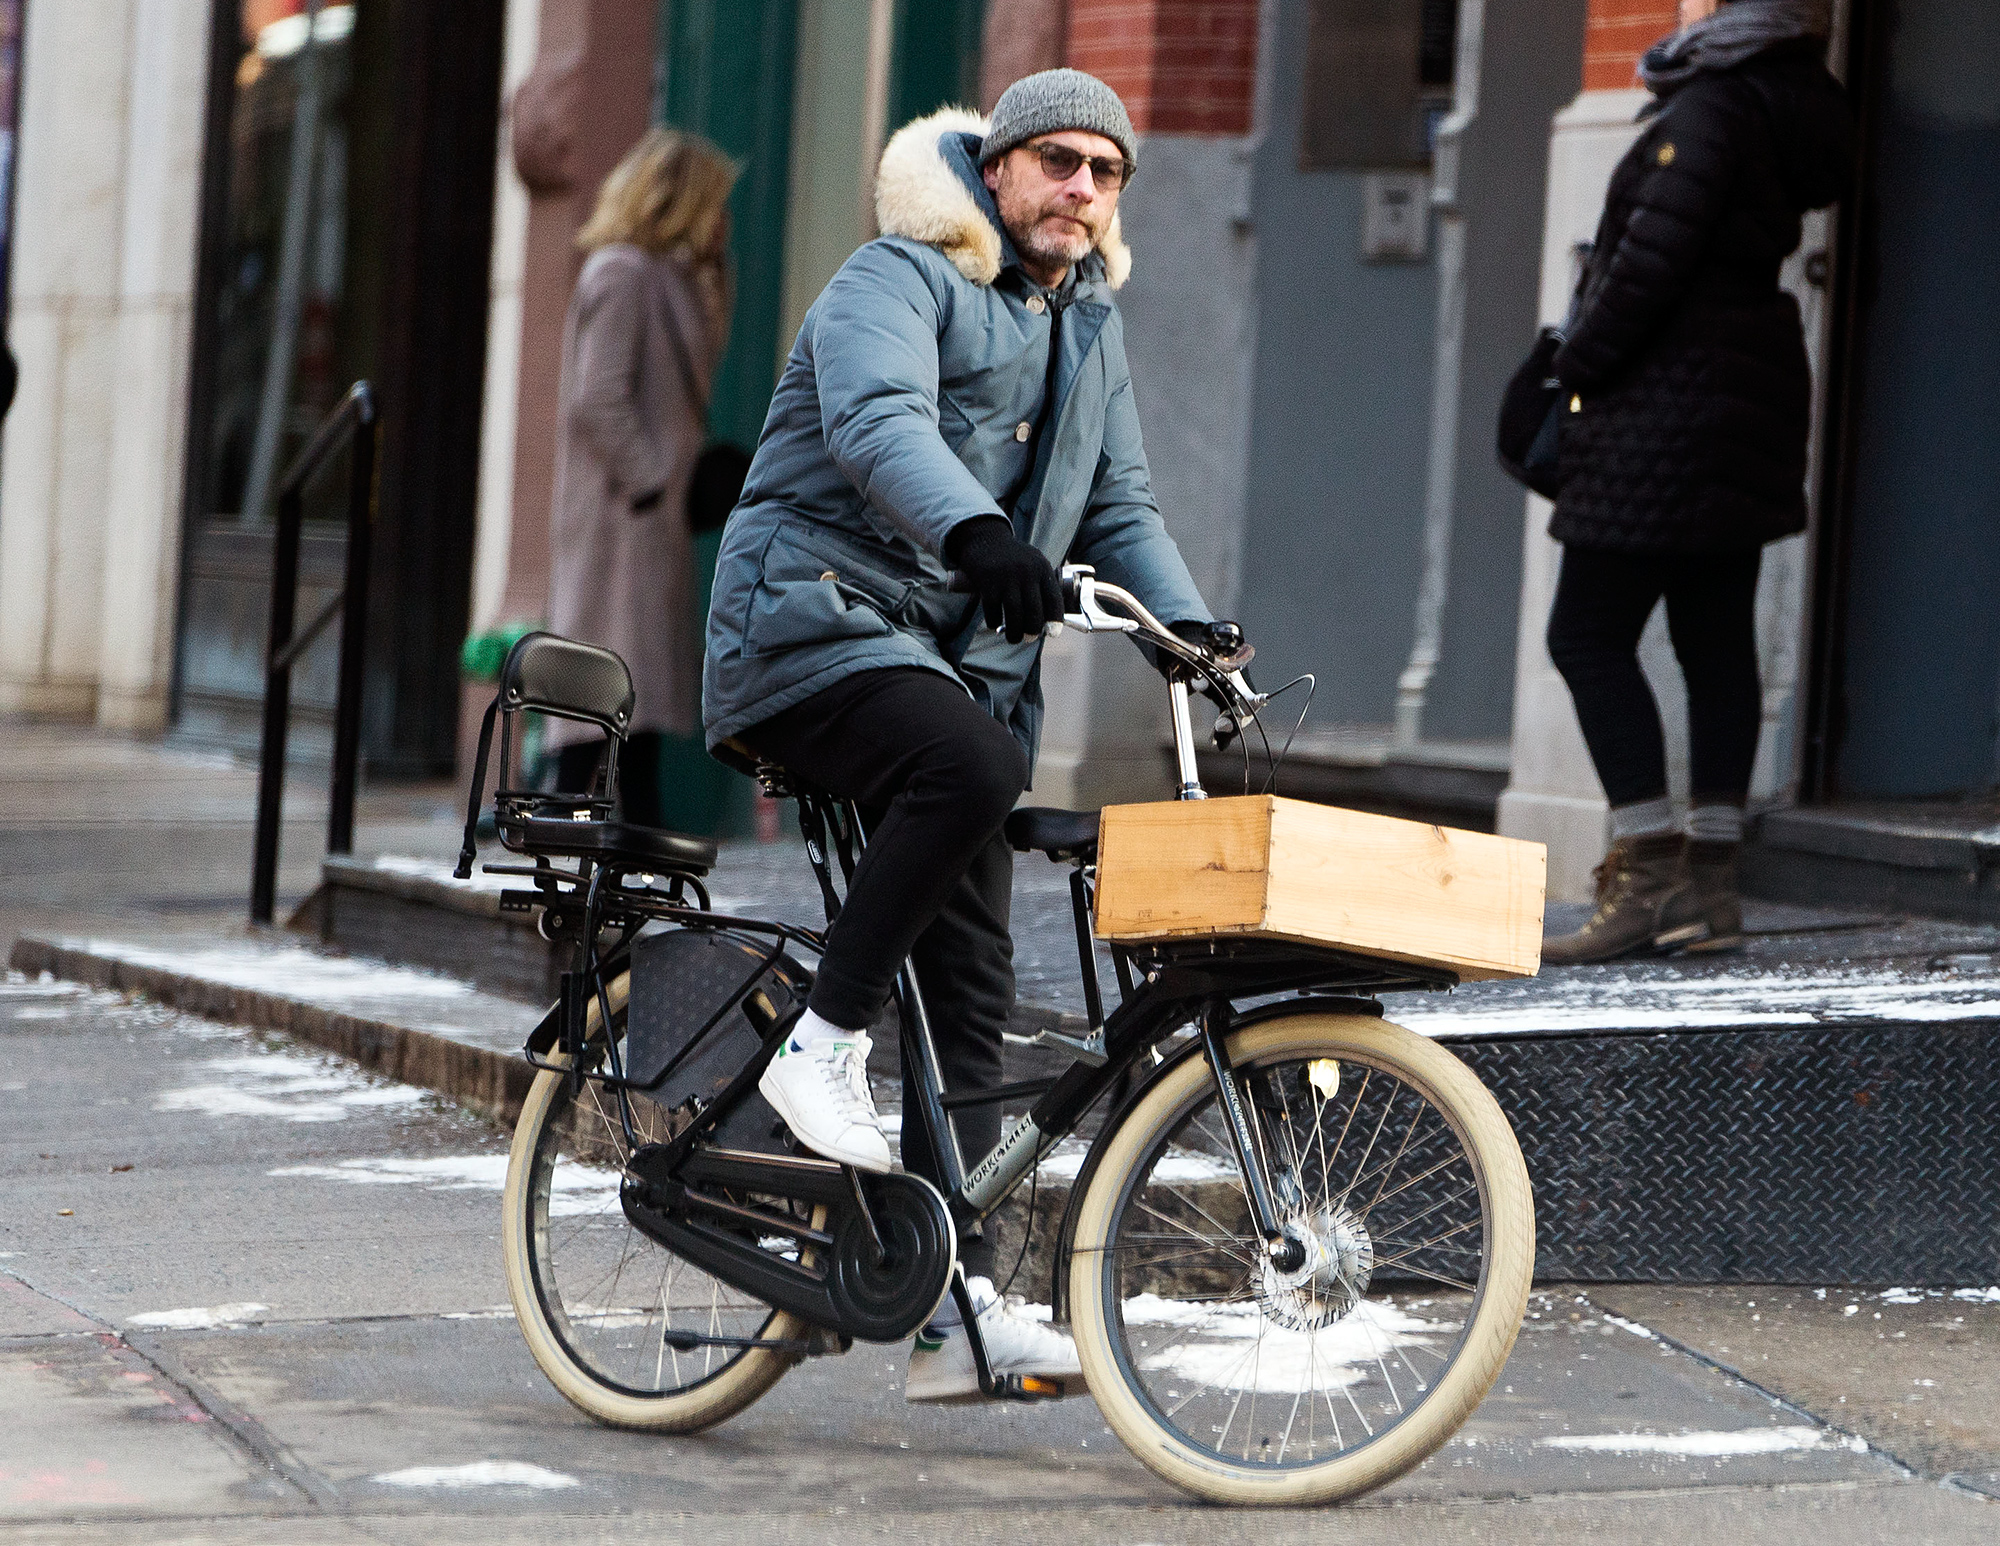 Liev Schreiber rides his bike in the cold in New York a day after New years day